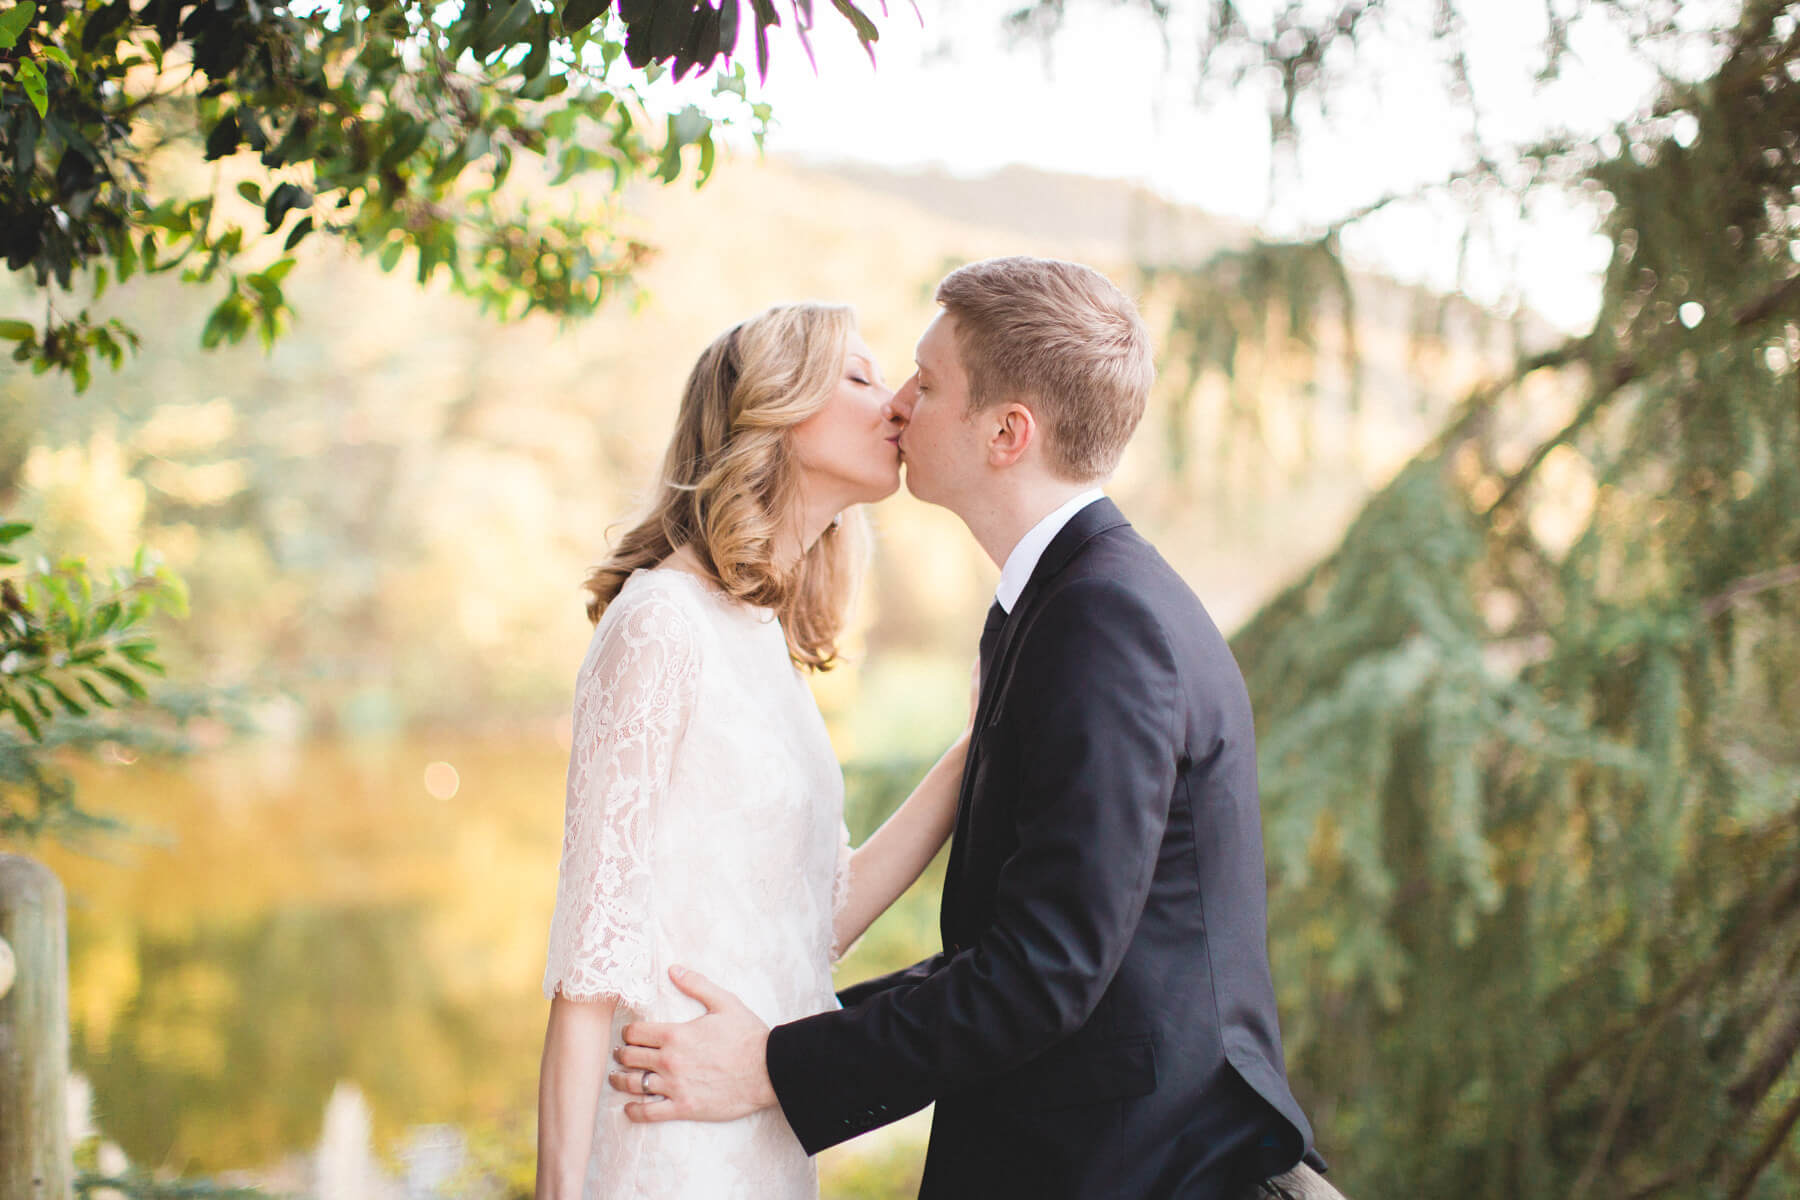 the-light-and-glass-wedding-engagement-photography-20151218-055.jpg